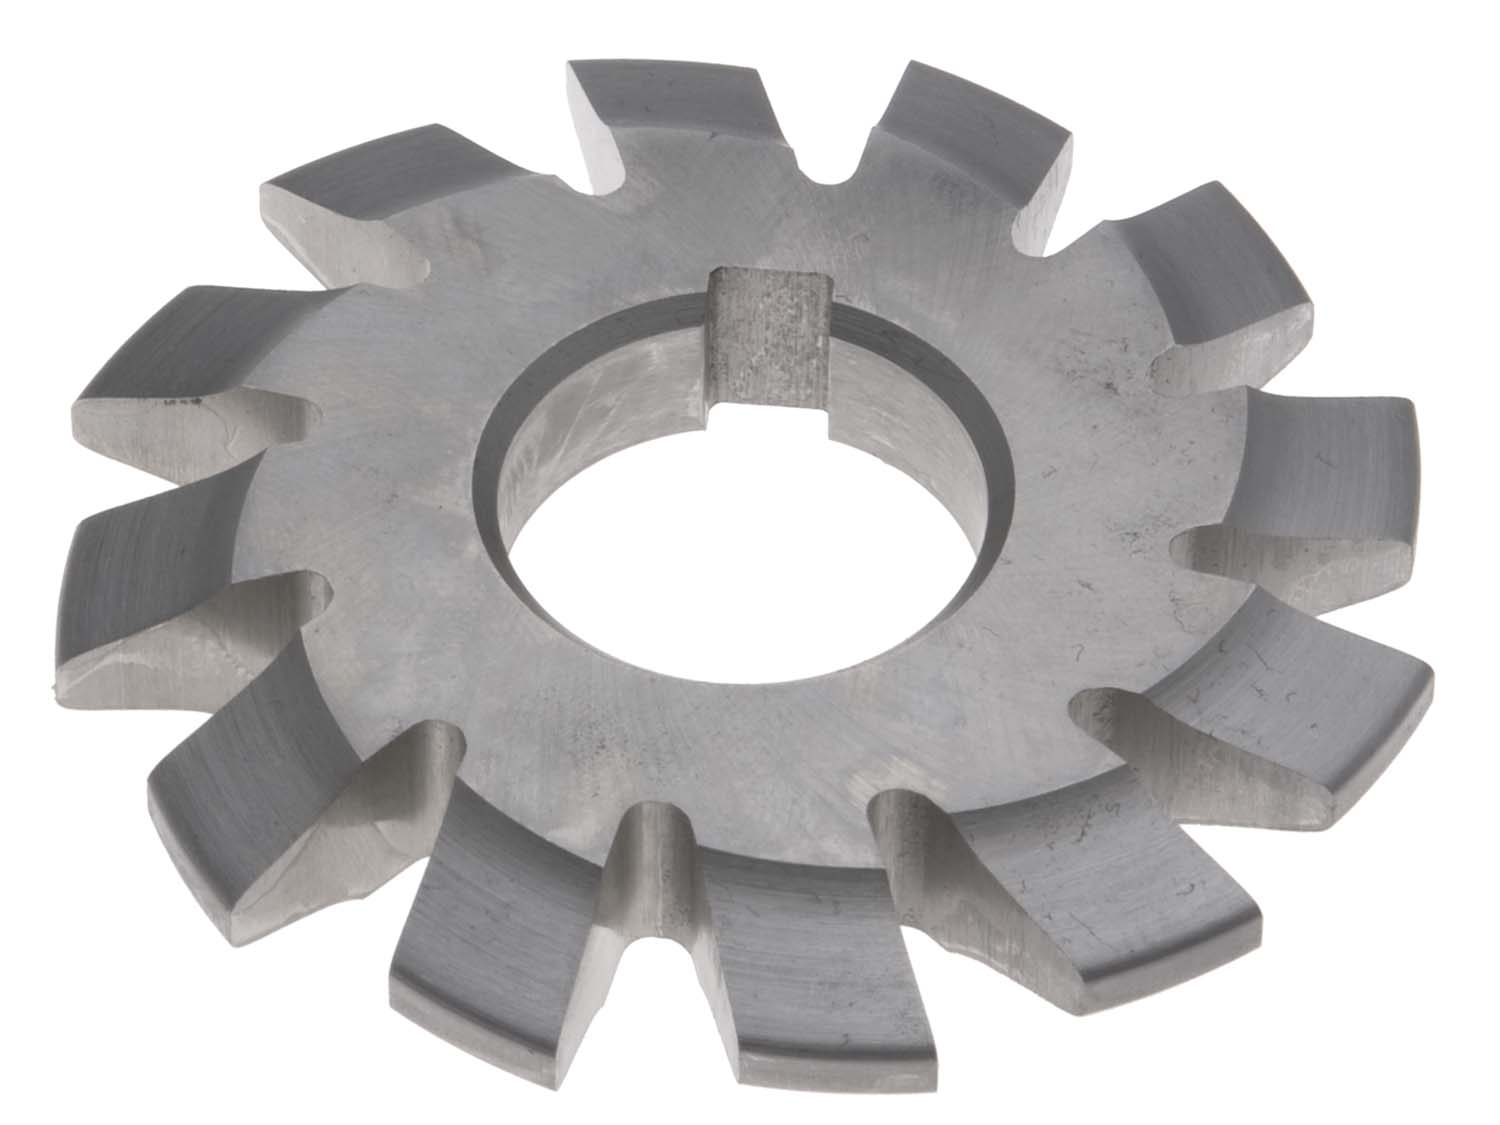 18 Diametral Pitch # 3  Involute Gear Cutter - 1 Inch ID - 14-1/2 Degree Pressure Angle